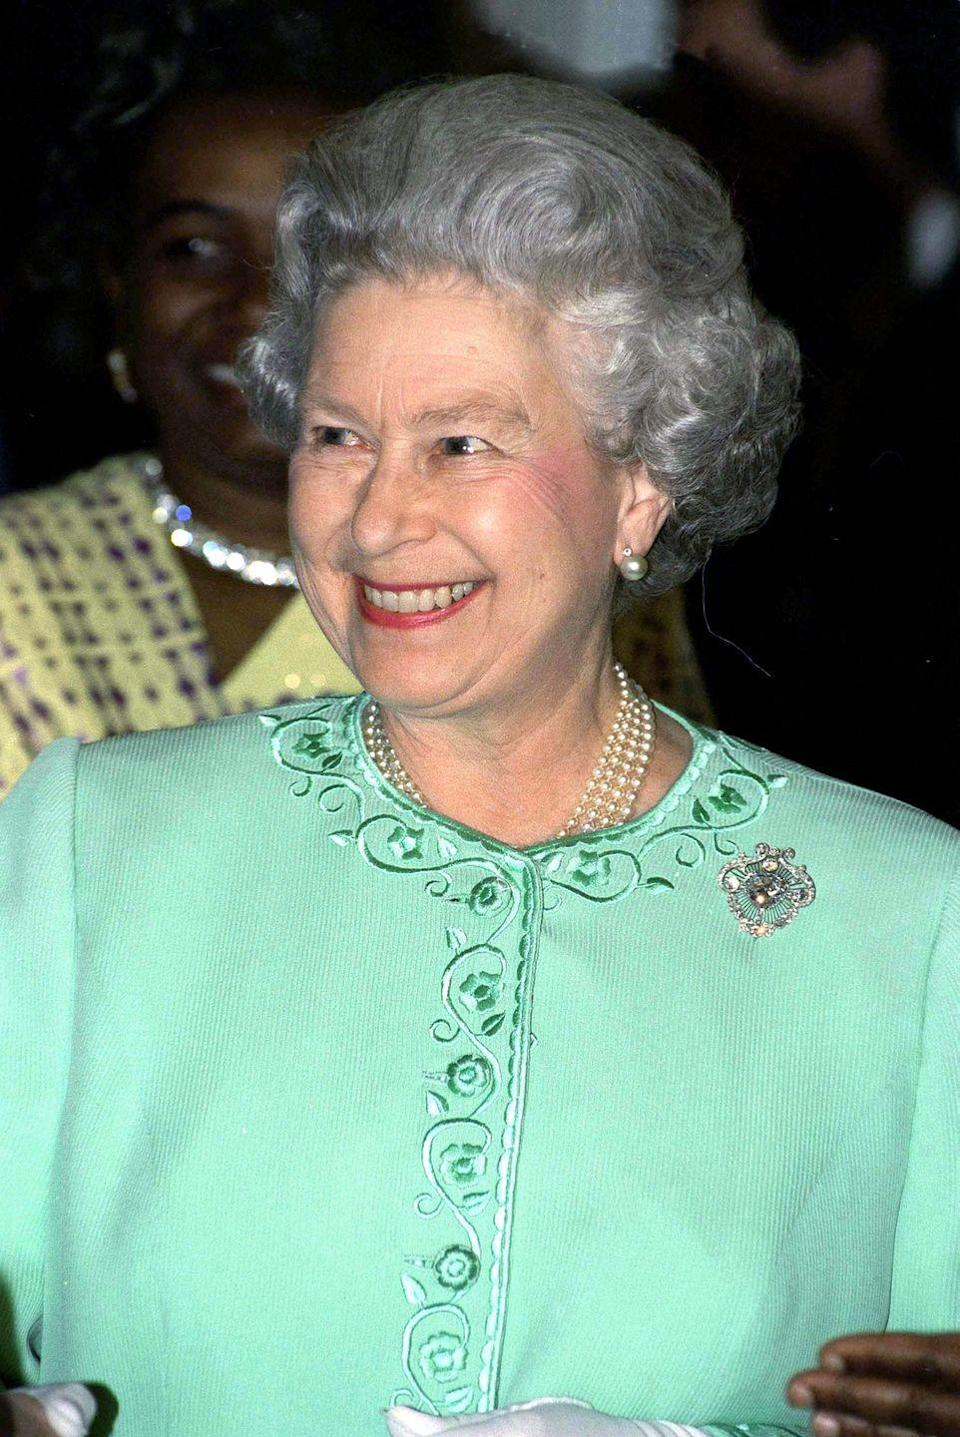 <p>Originally designed for Queen Mary in 1911, the Cullinan V Heart diamond brooch that the Queen is pictured wearing on March 9, 1989 is about 19 carats.</p>